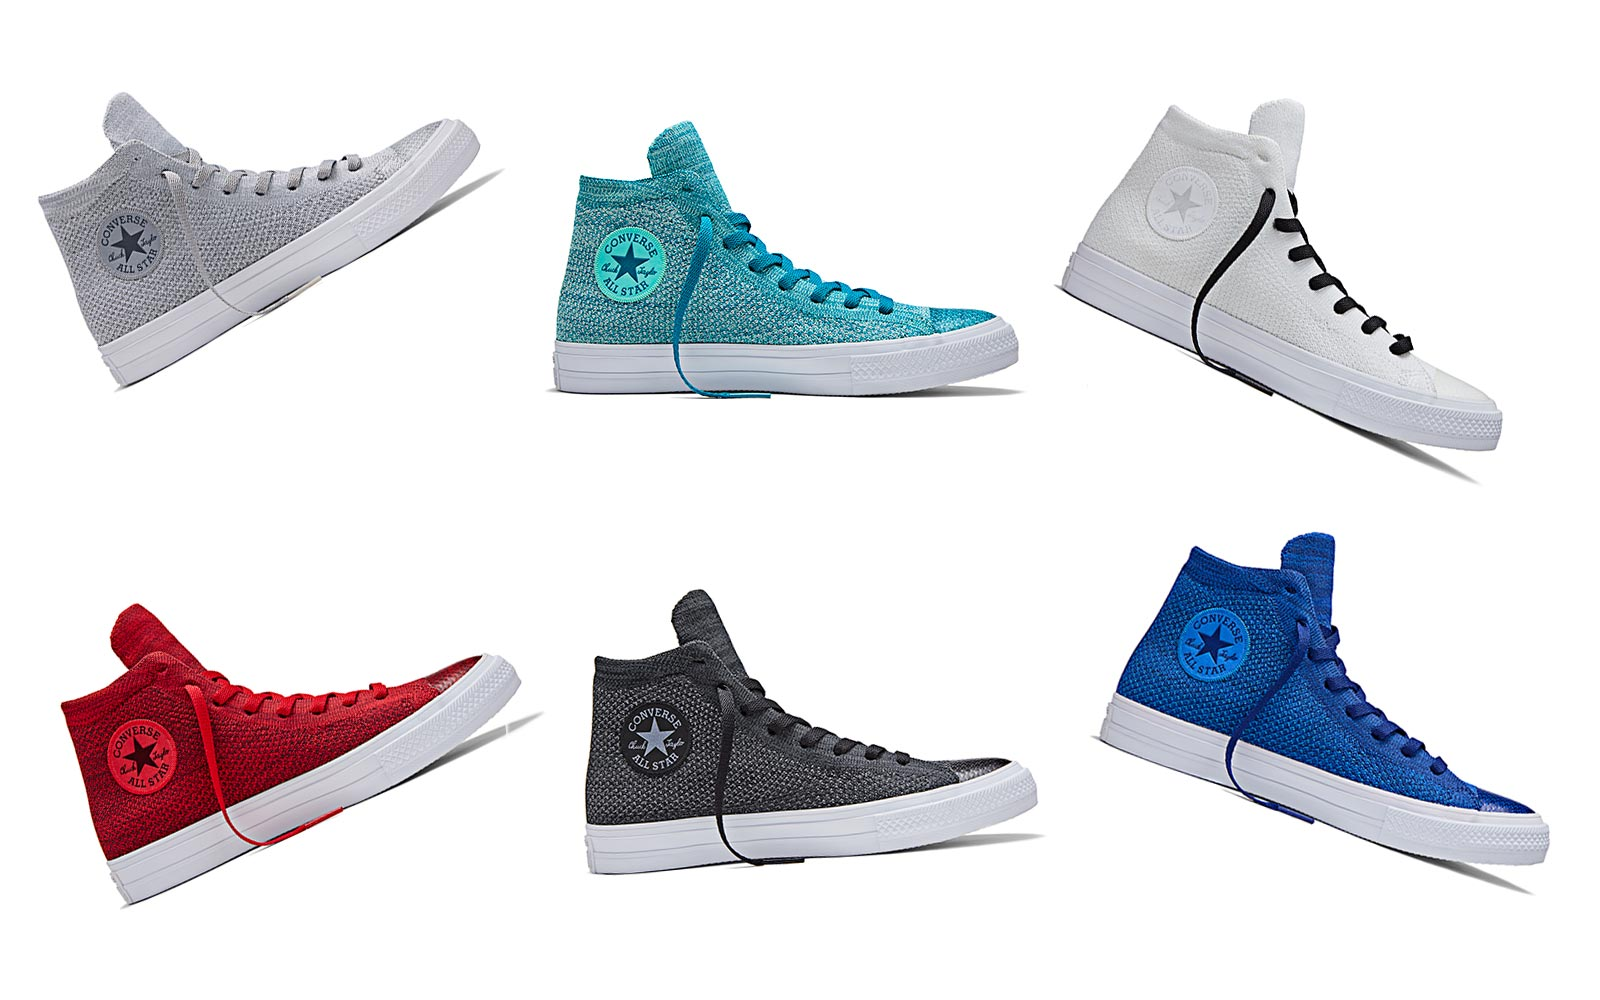 c620163bbfa6 Converse Chuck Taylor All Star x Nike Flyknit Launch Our New Favorite  Travel Shoe